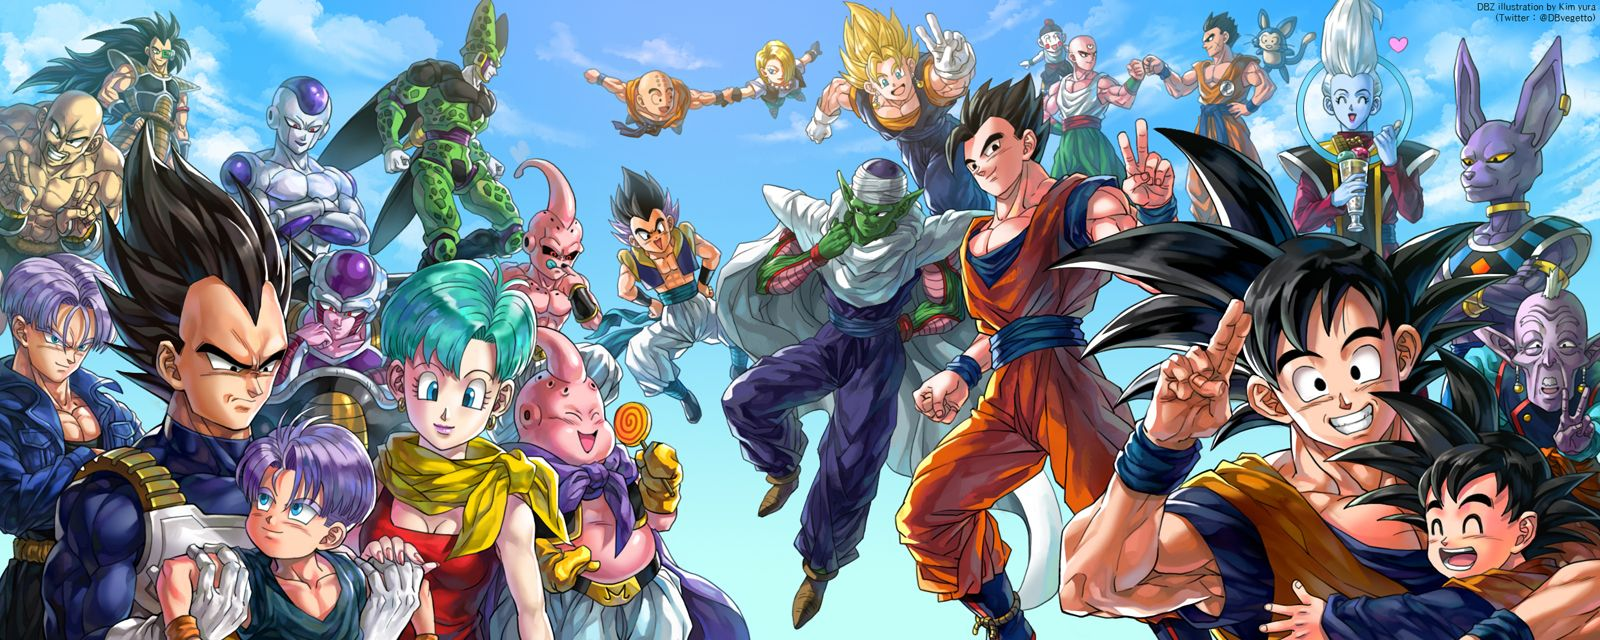 Top 10 Strongest, Most Powerful Dragon Ball Z Characters